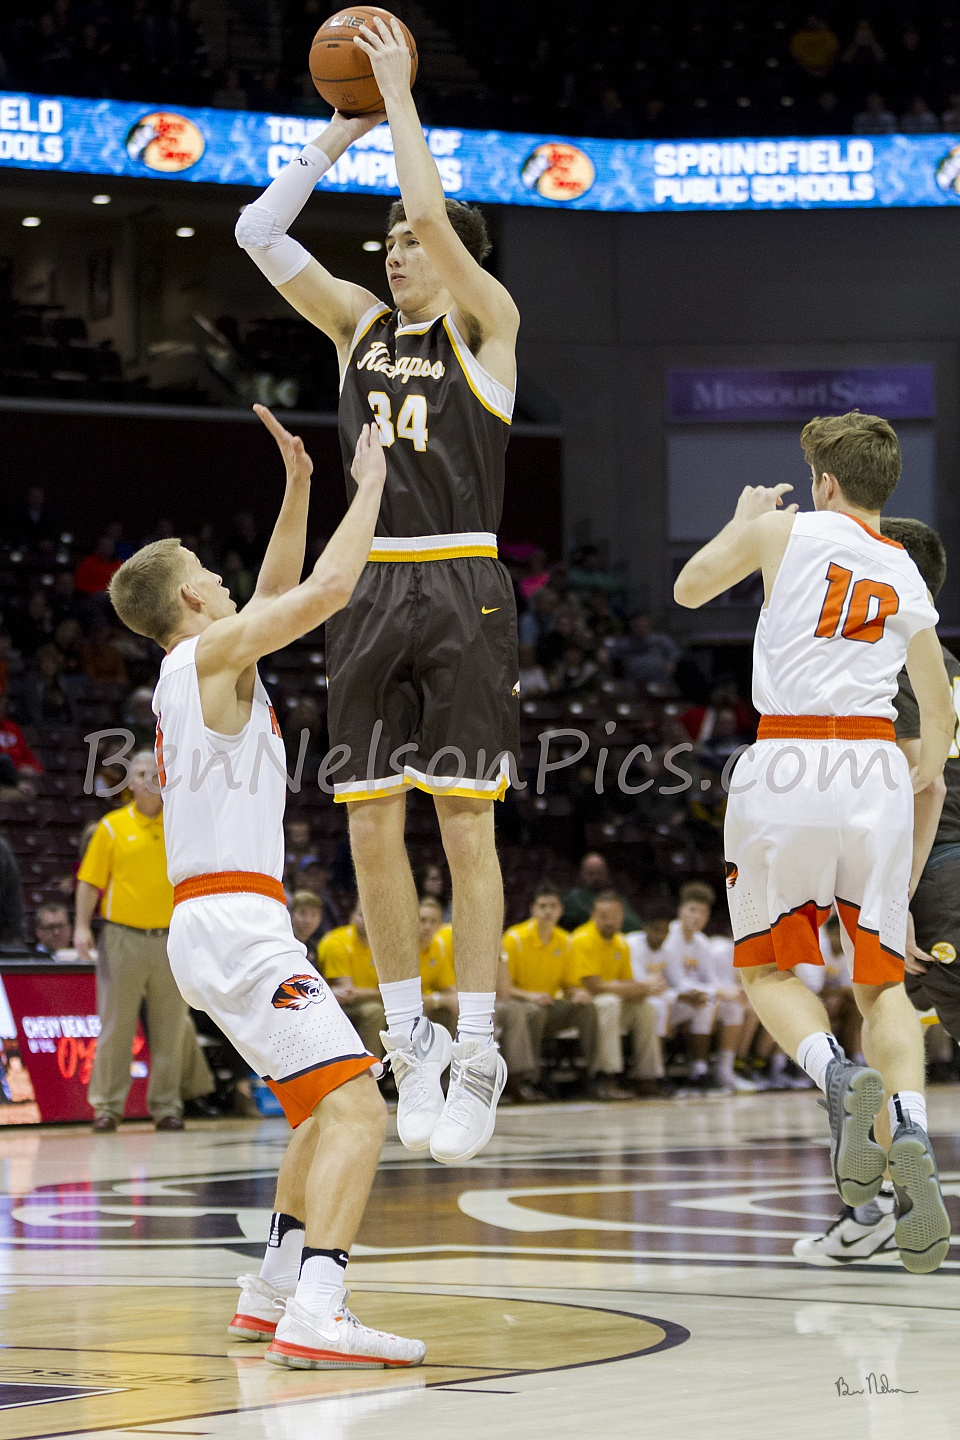 Bass Pro Shops Tournament of Champions 2017 - Jared Ridder Kickapoo High School goes up for a jump shot.